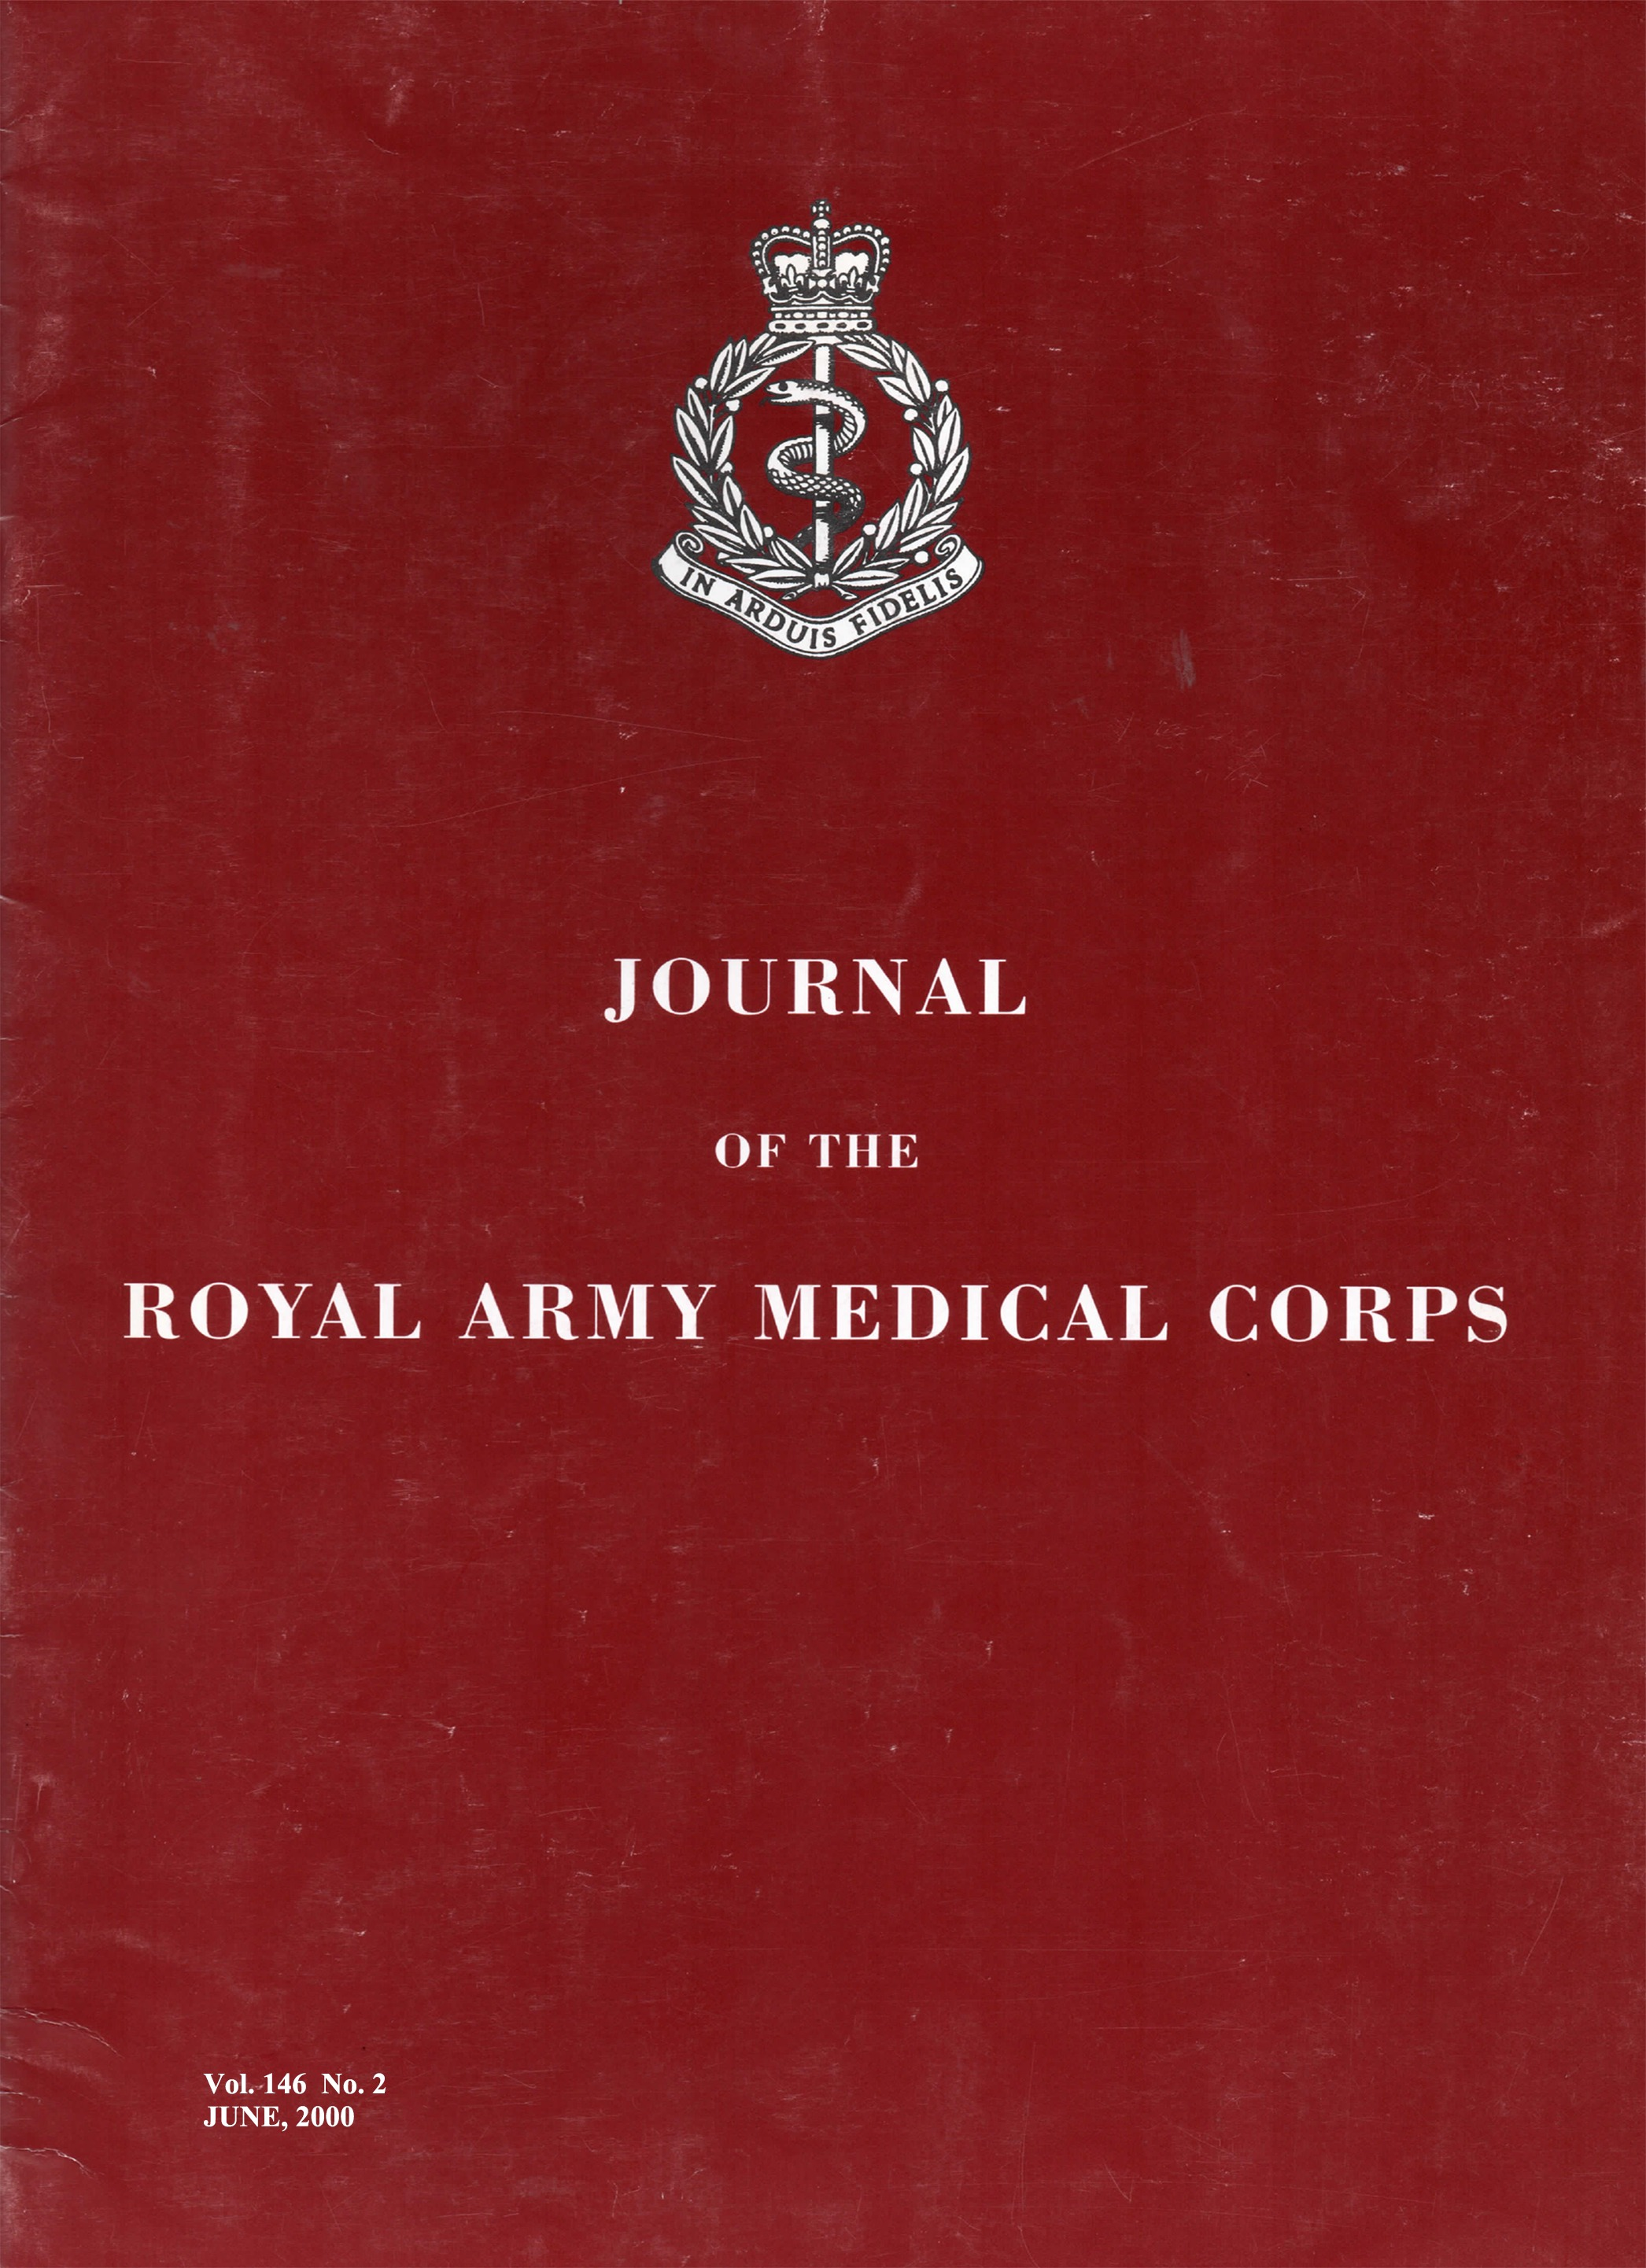 Battlefield Advanced Trauma Life Support (BATLS) | Journal of the Royal  Army Medical Corps